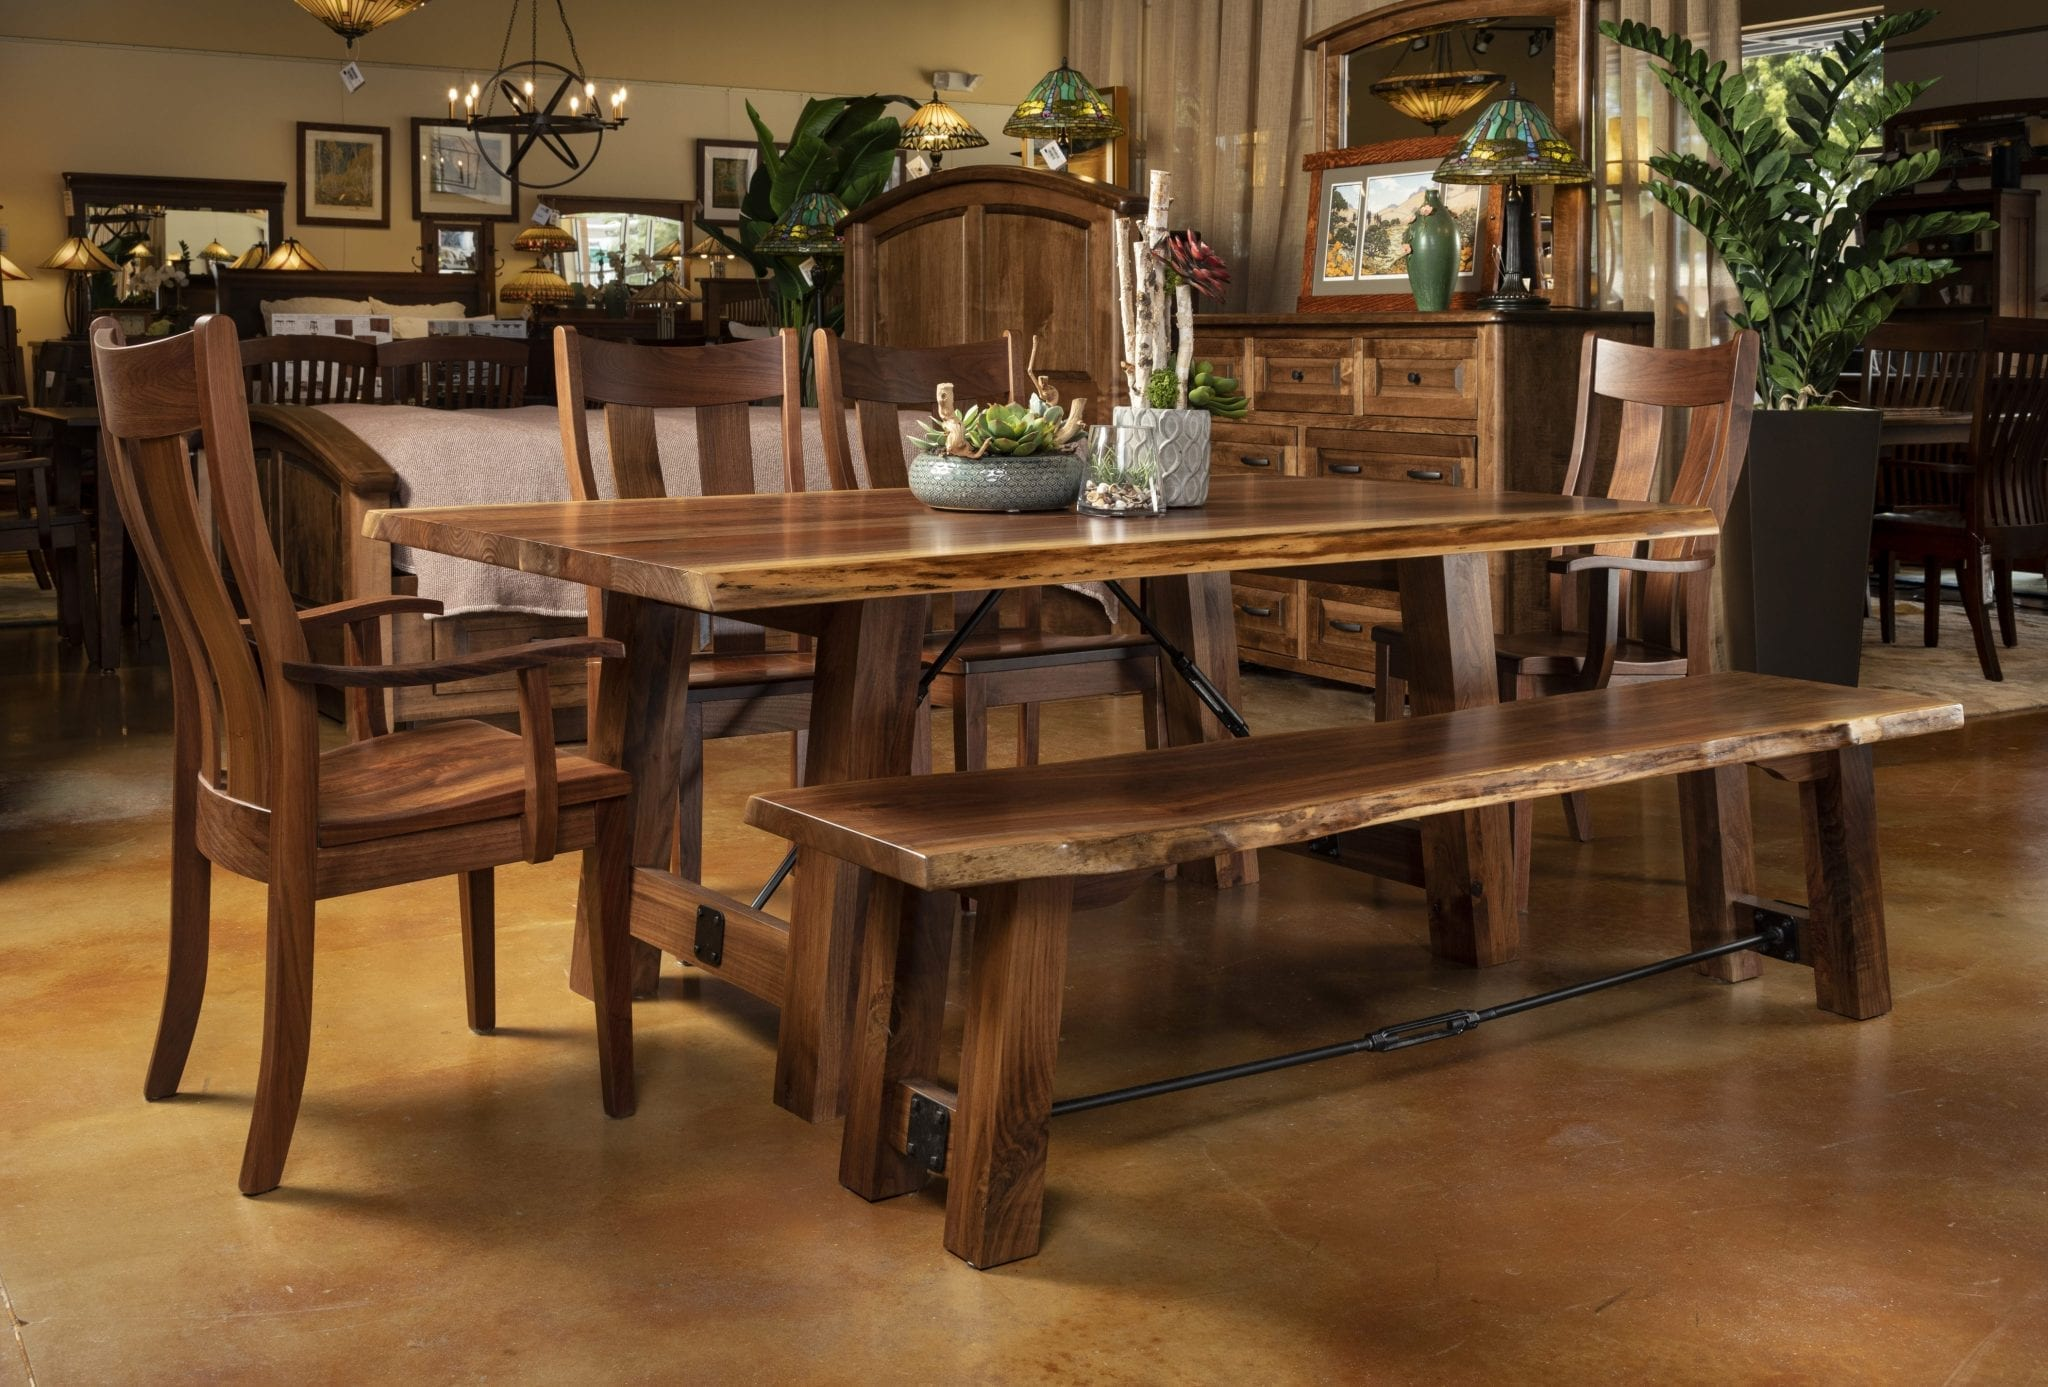 Dining room table, chairs, and bench with a live edge finish